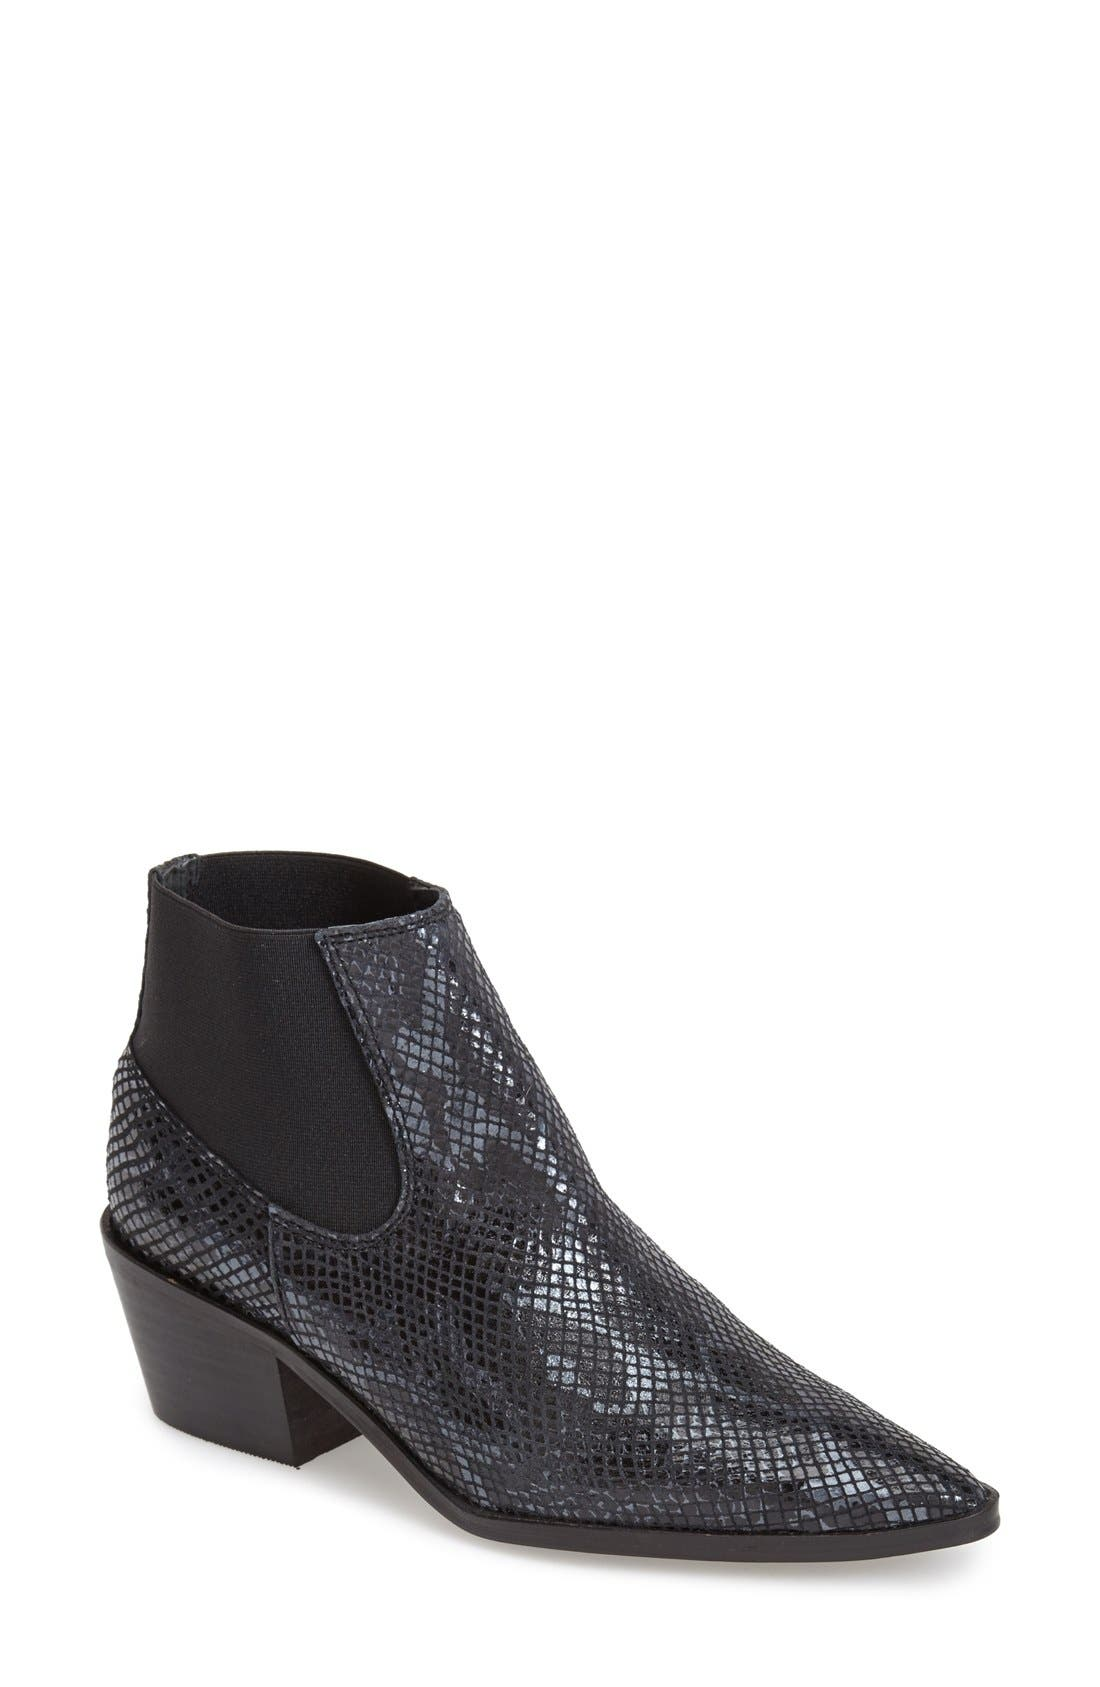 Alternate Image 1 Selected - Topshop 'Marr' Pointy Toe Chelsea Boot (Women)